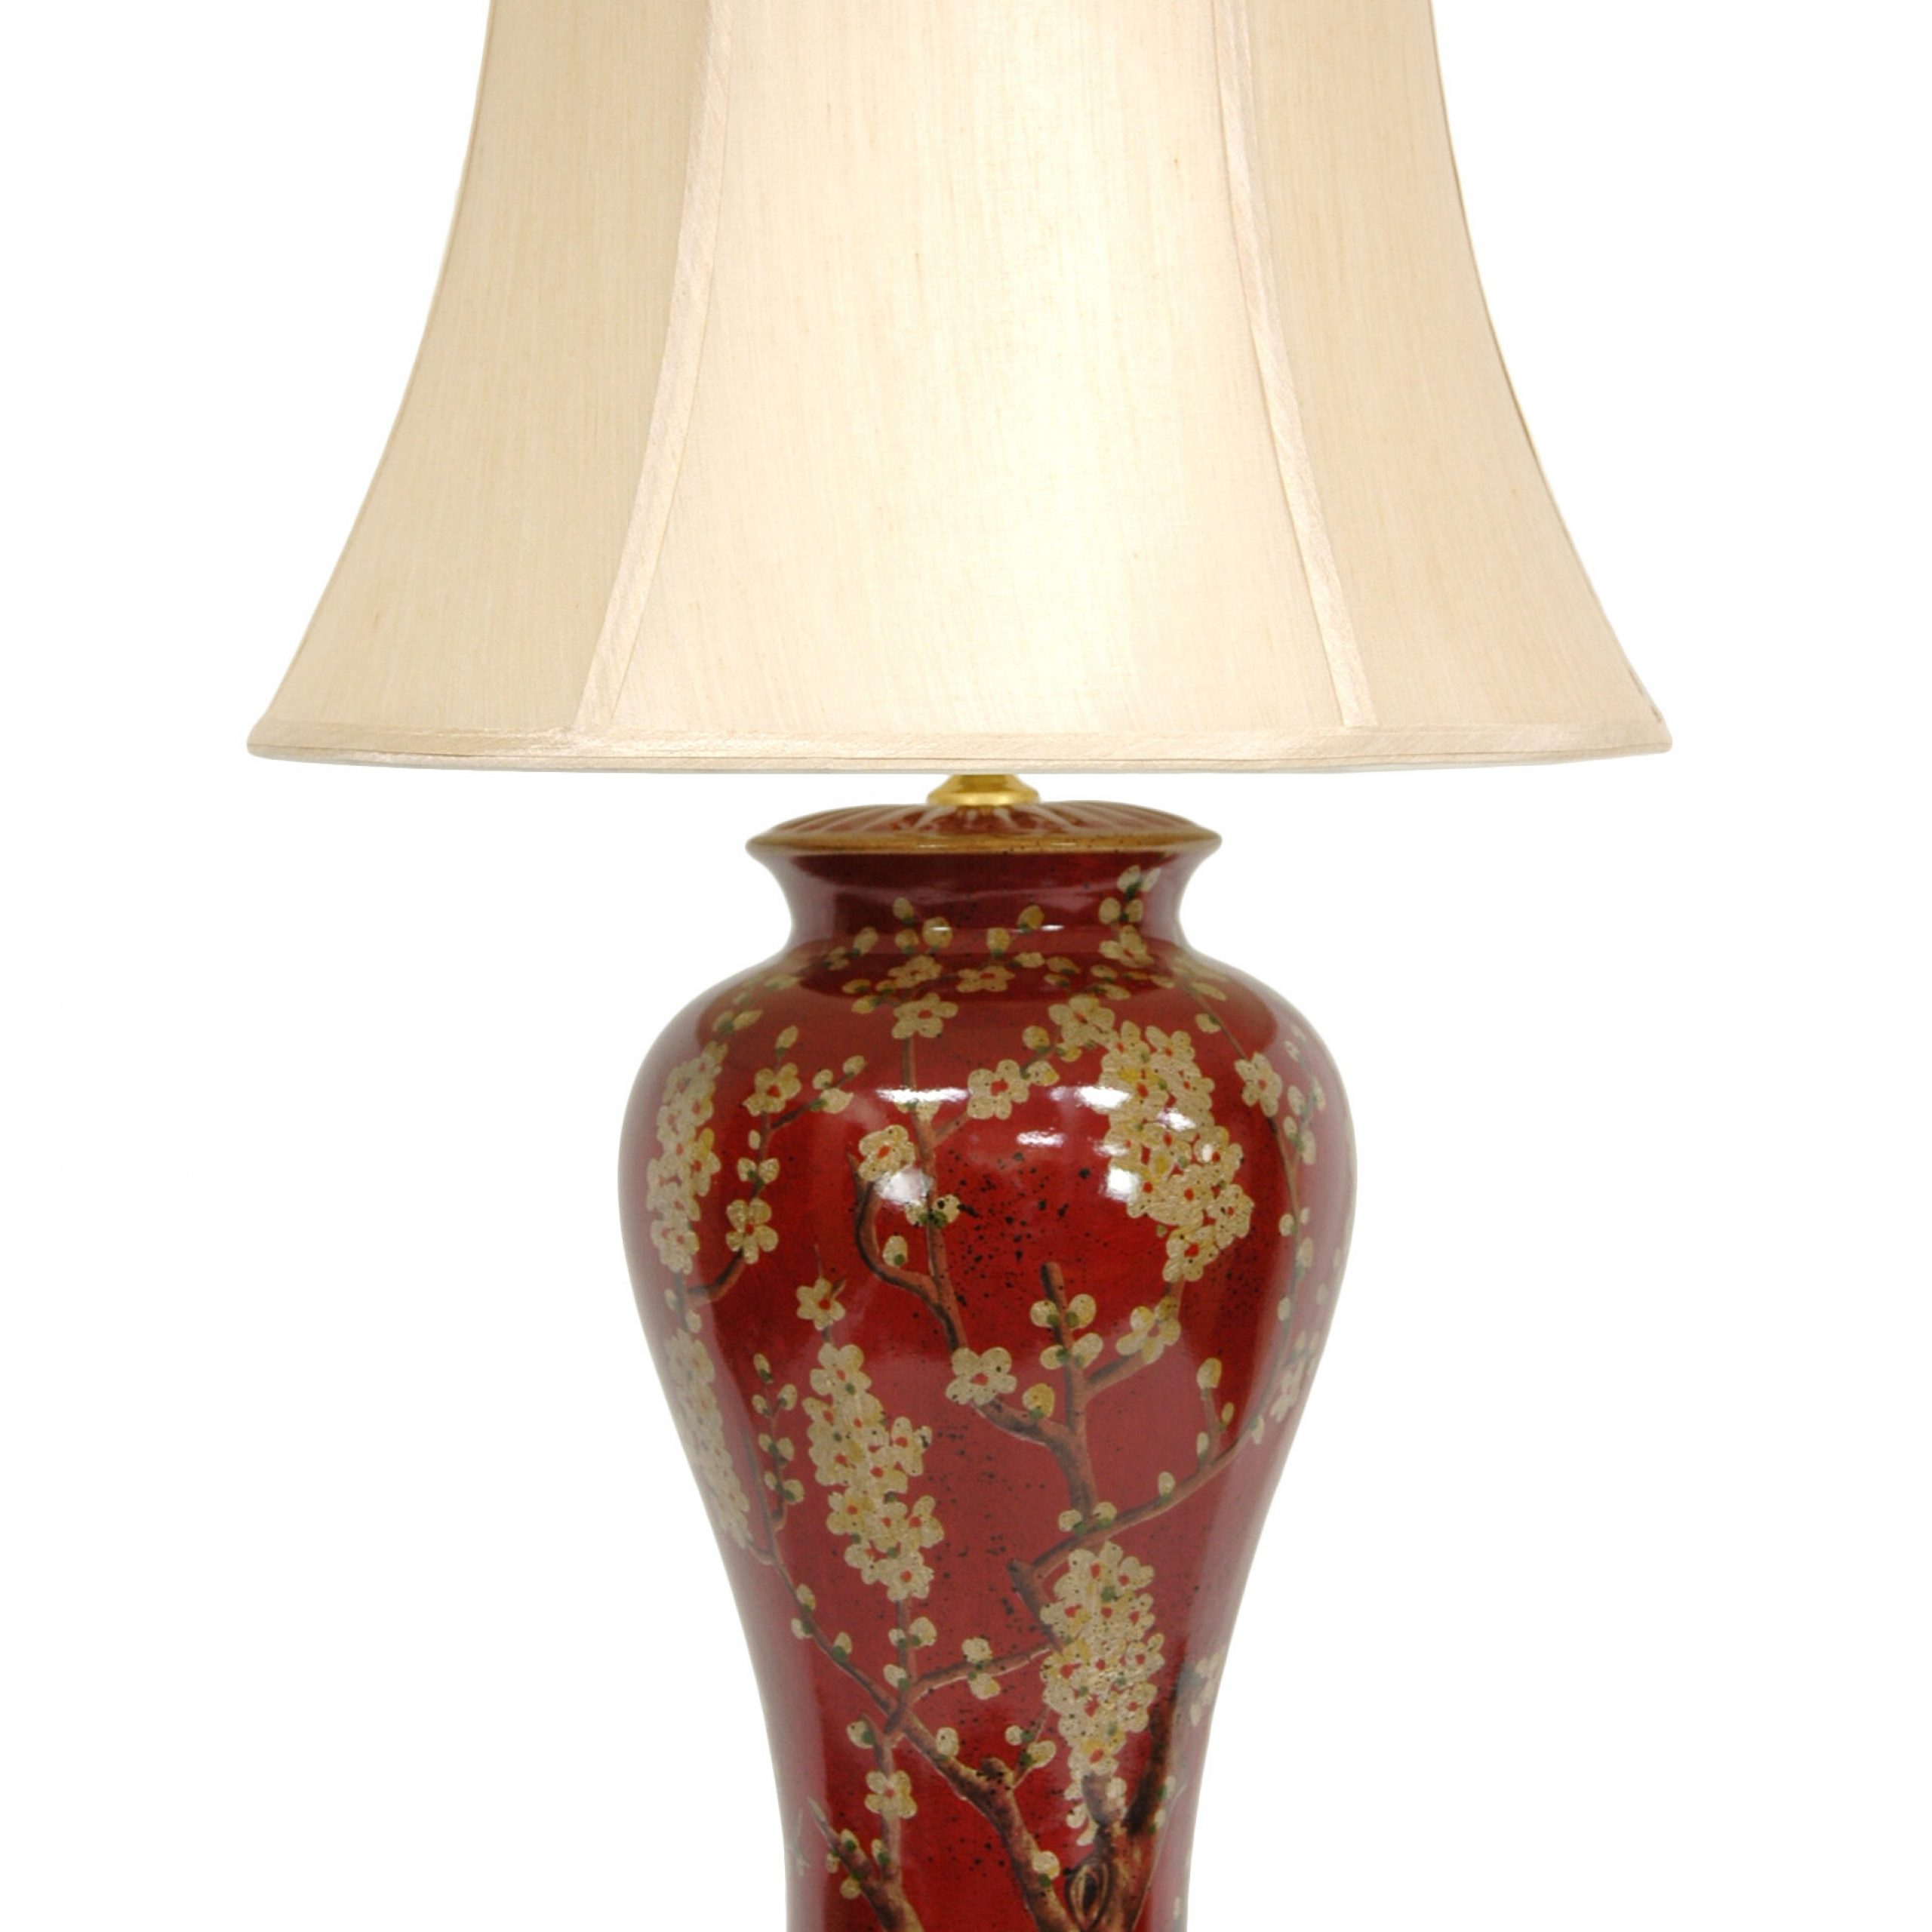 "Irwin Blossom Vase 30"" Table Lamp Pertaining To Irwin Blossom Garden Stools (View 8 of 25)"